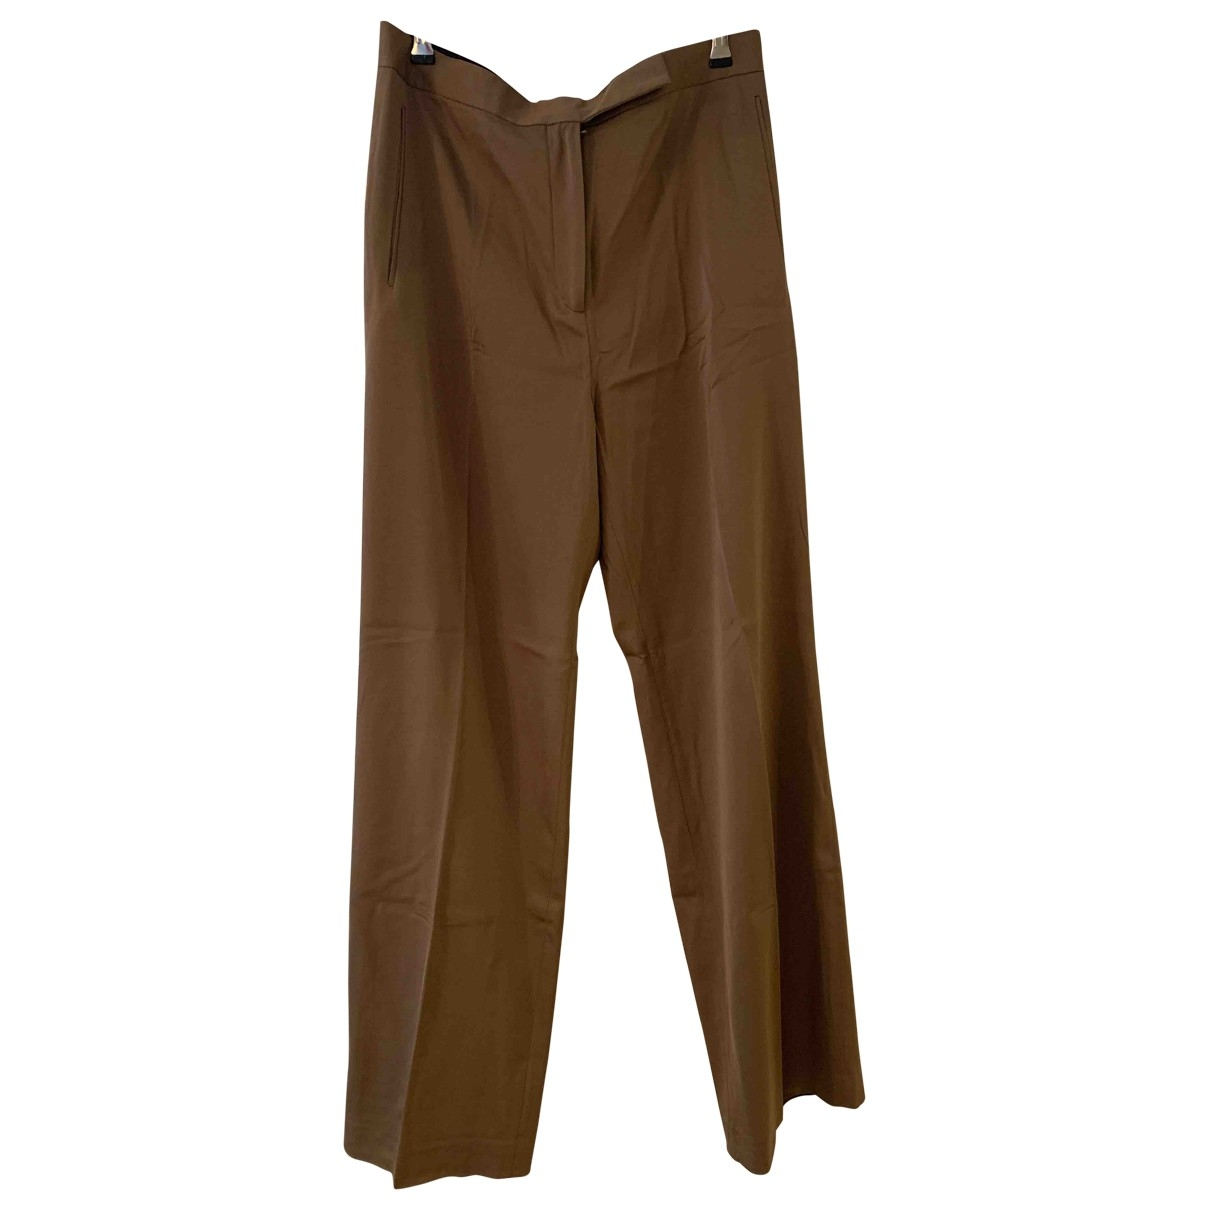 Cos \N Gold Trousers for Women 14 UK